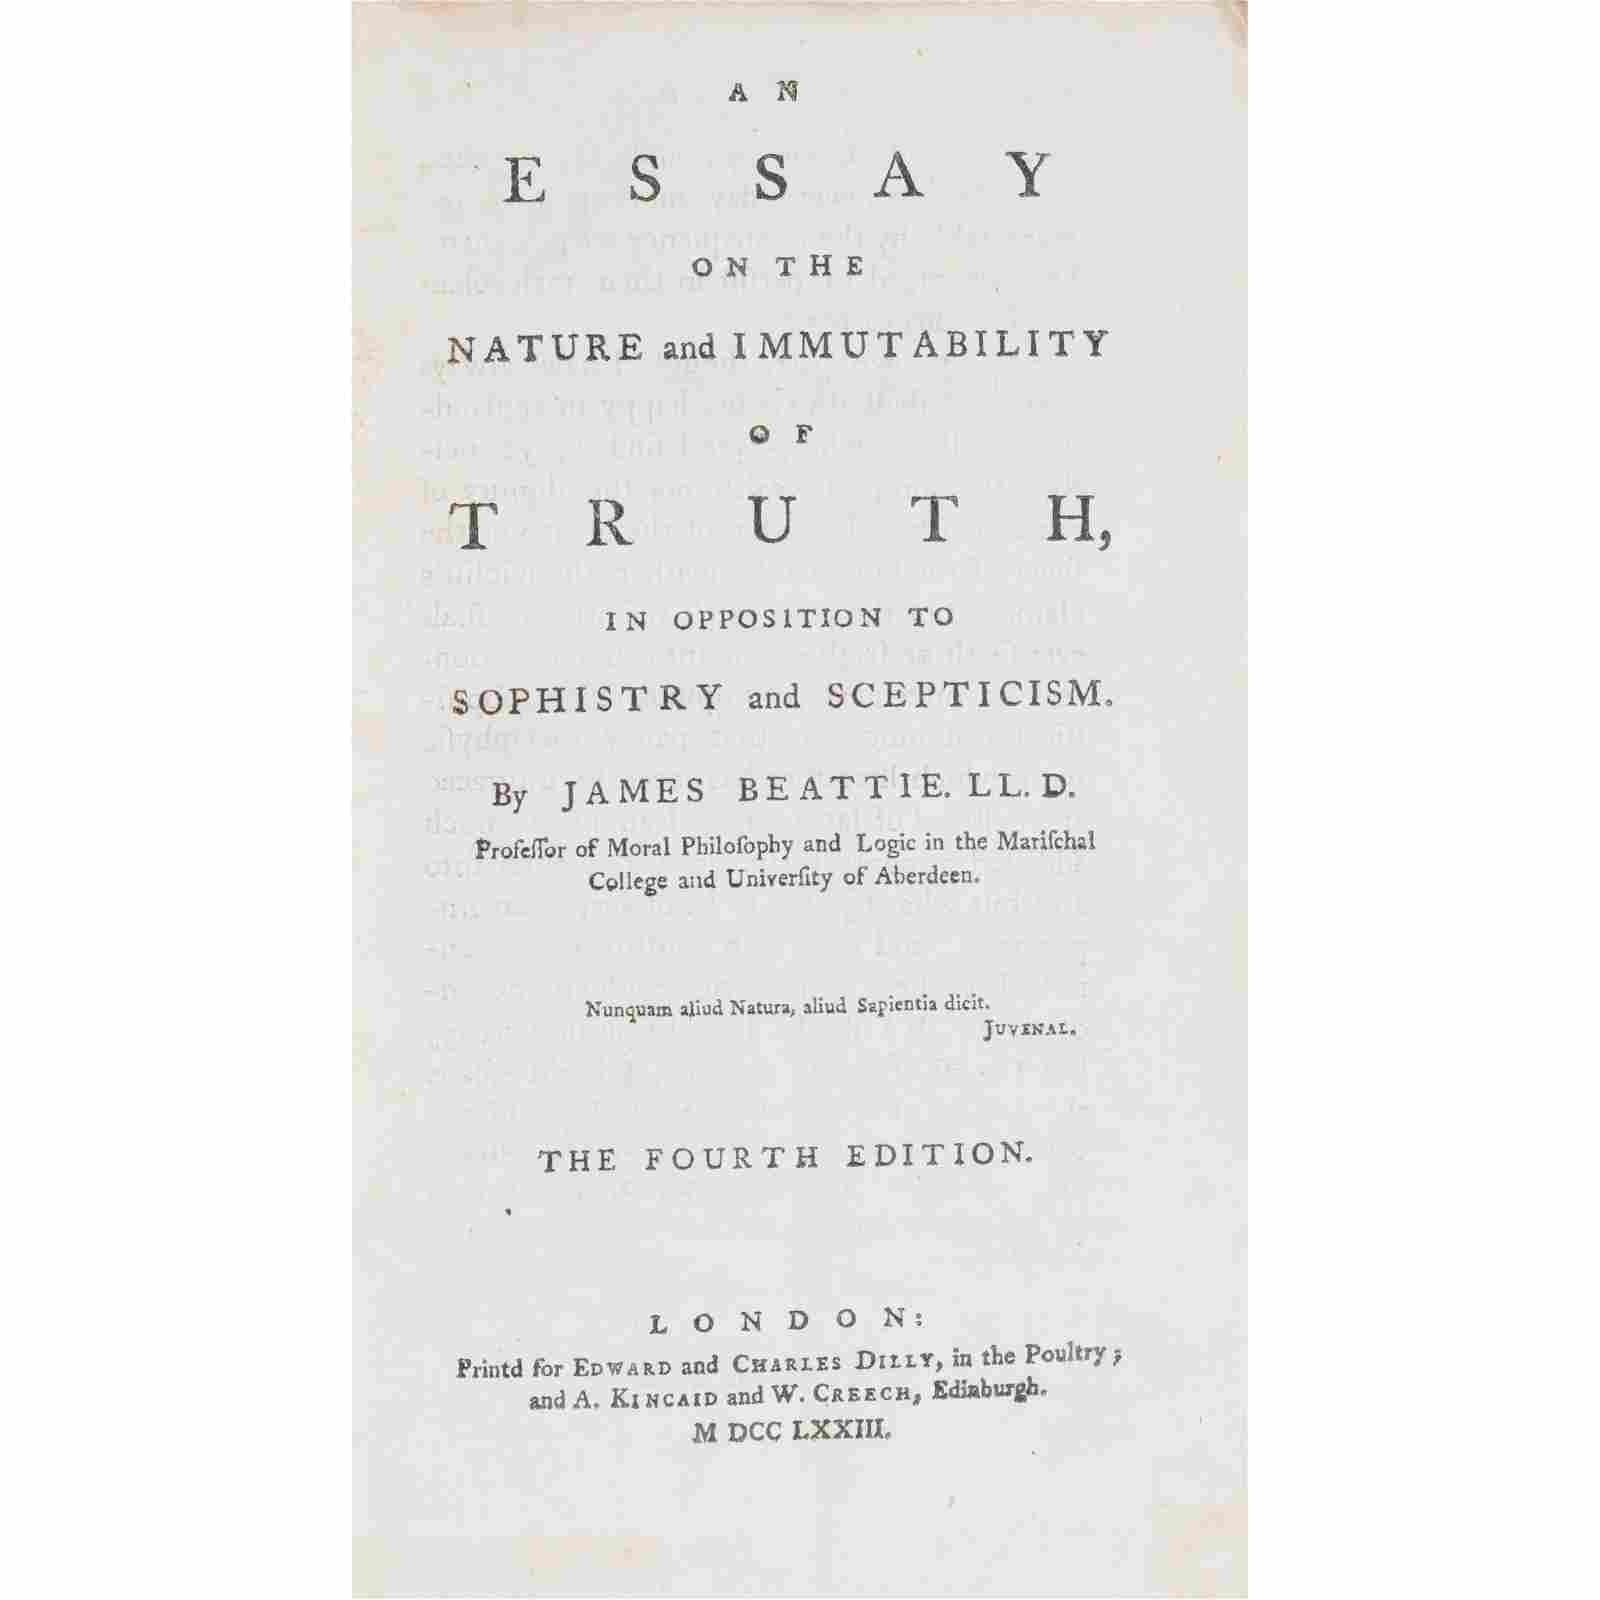 Hume, David, and others 5 Philosophical Works